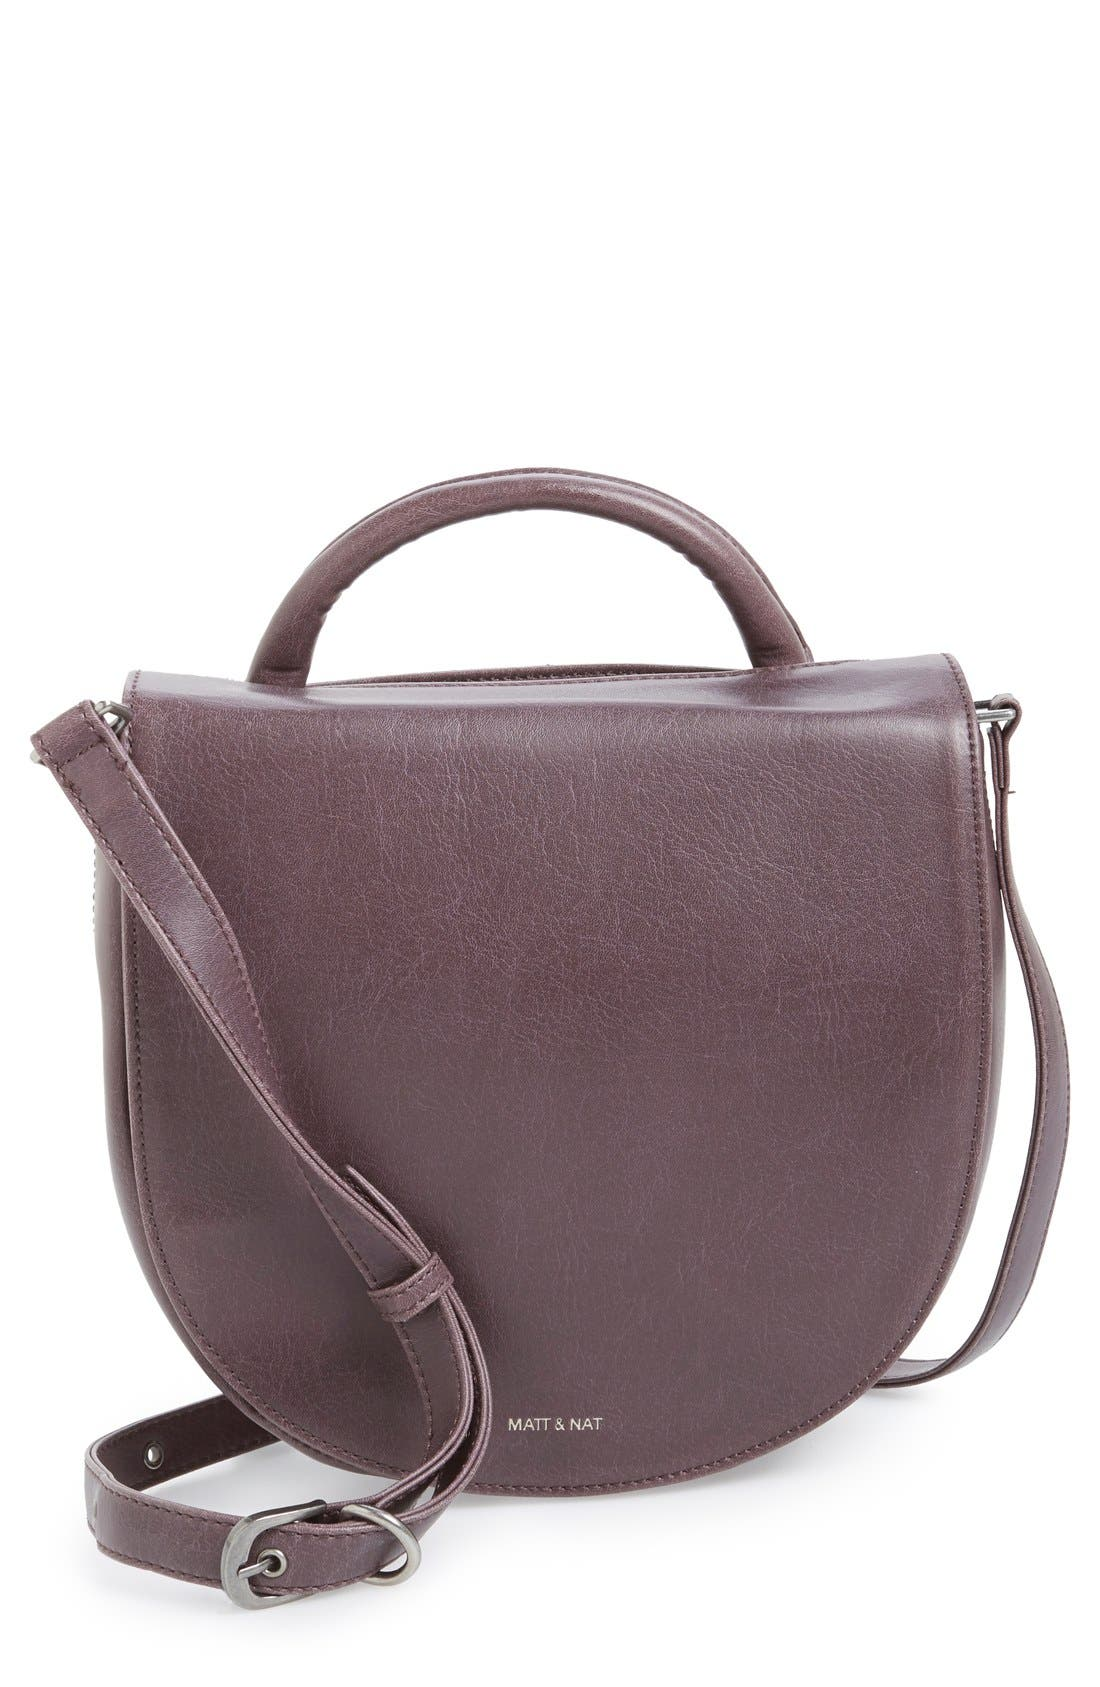 Alternate Image 1 Selected - Matt & Nat 'Parabole' Vegan Leather Crossbody Bag